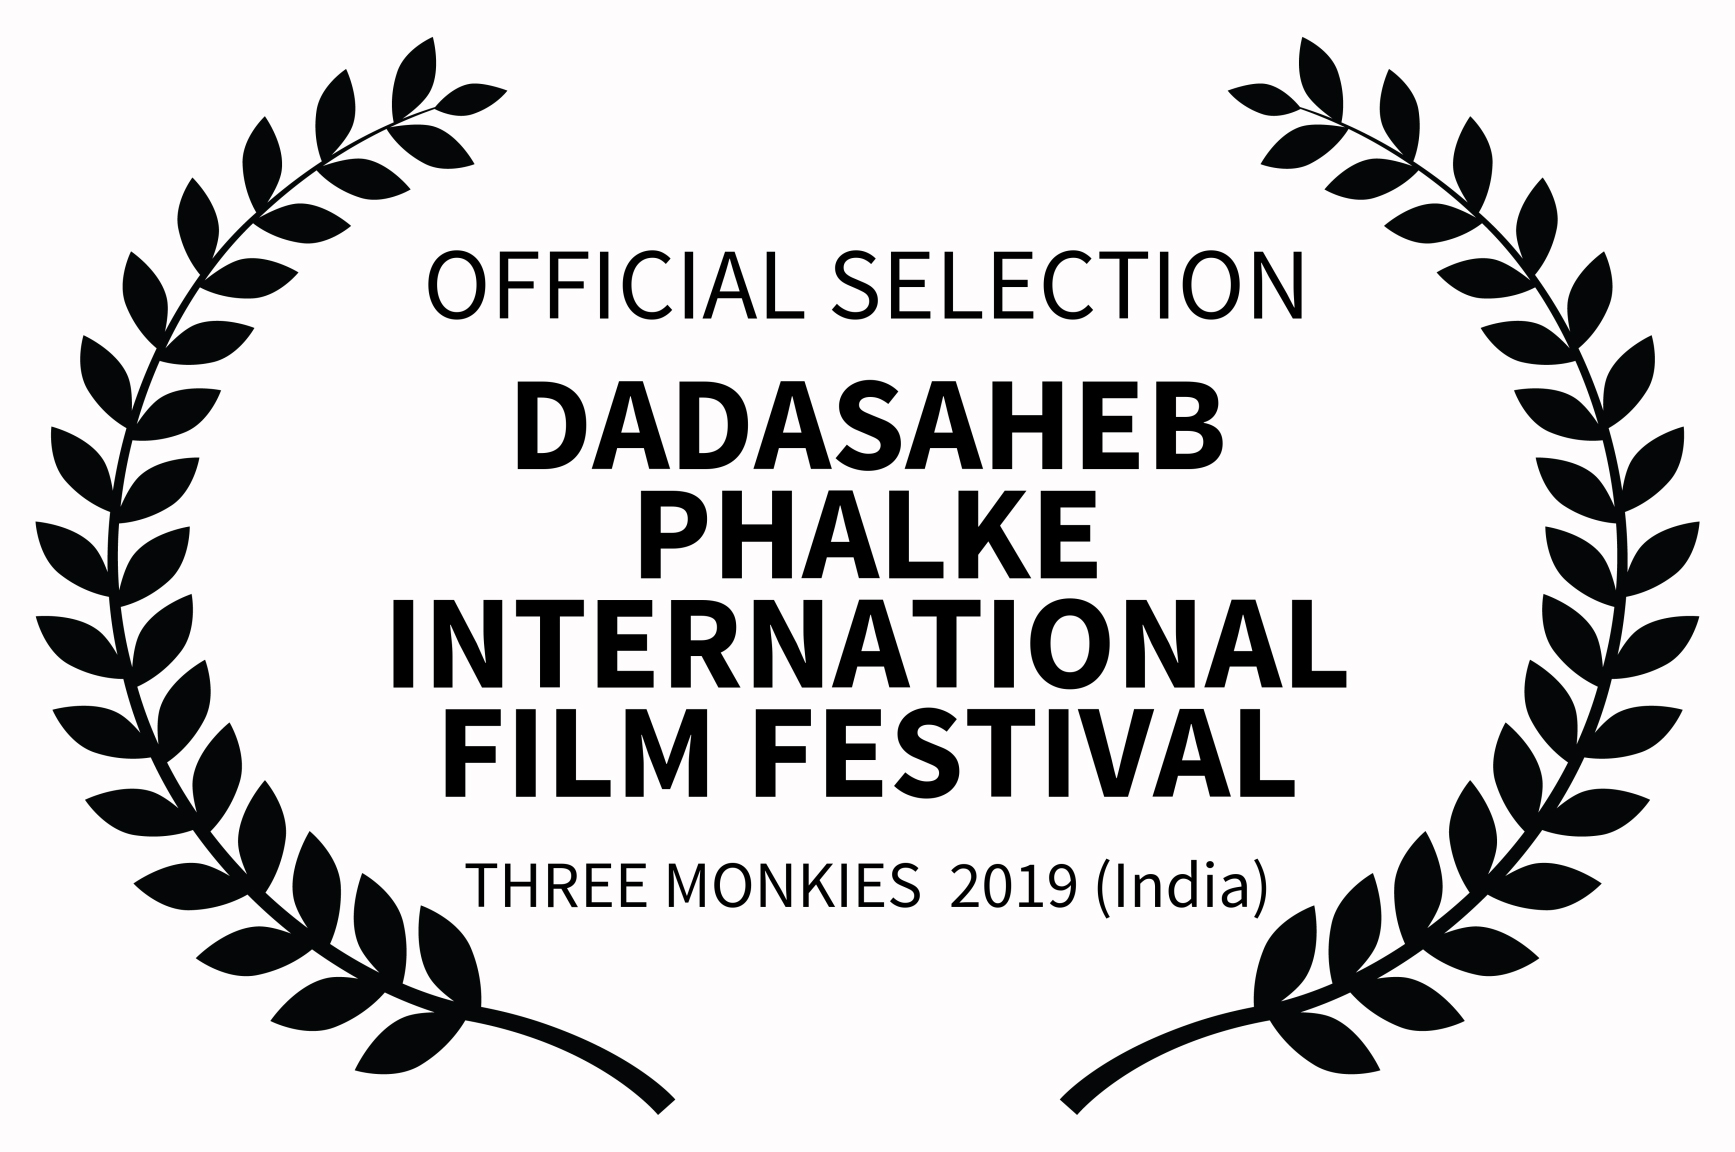 OFFICIAL SELECTION - DADASAHEB PHALKE IN